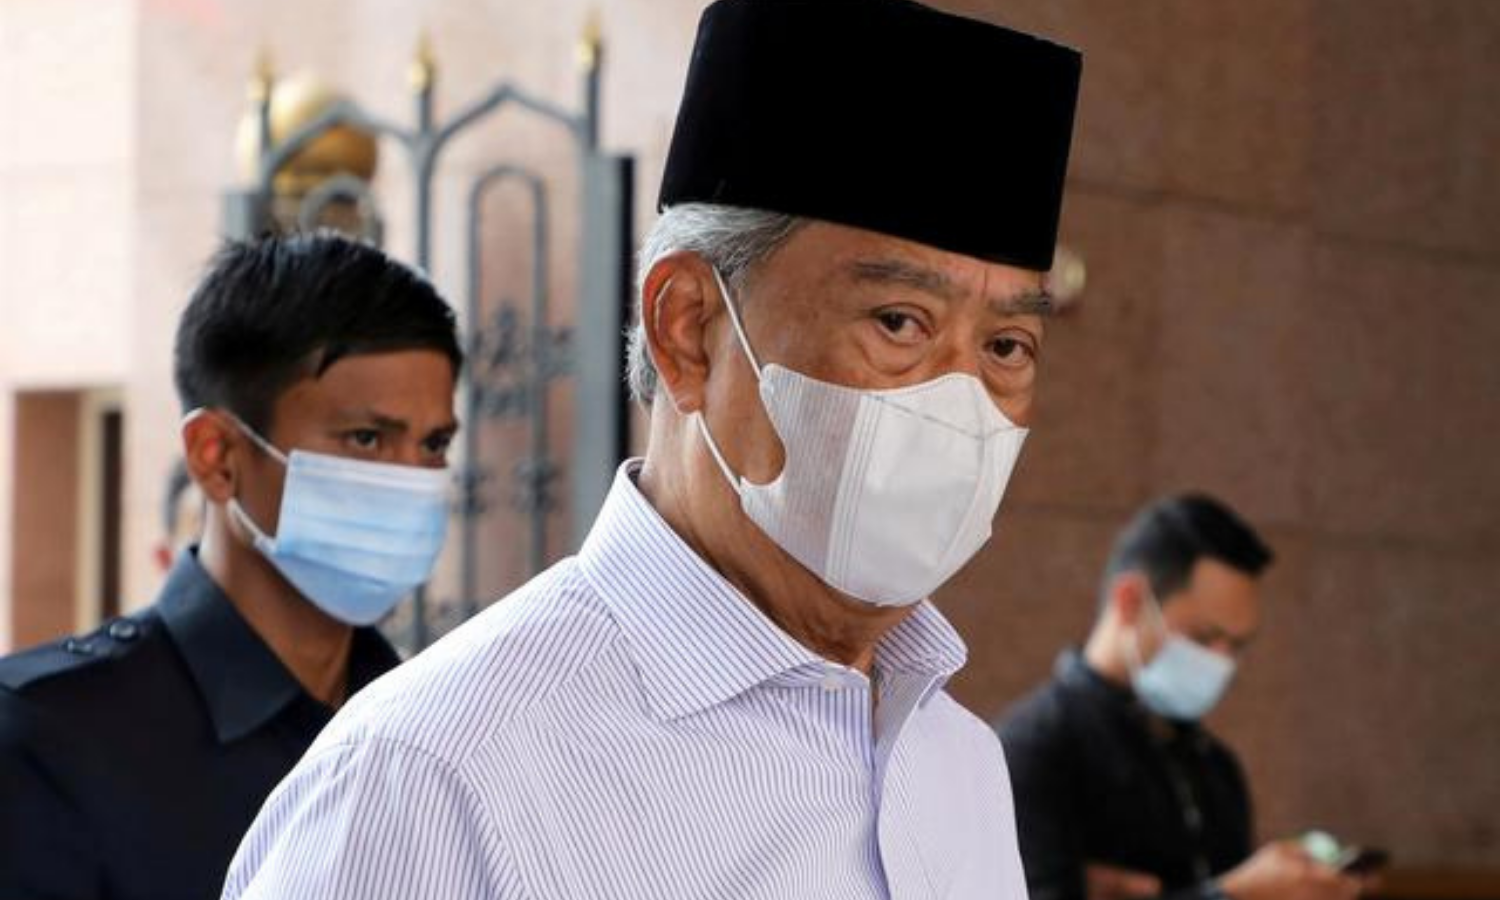 In this file photo, Malaysia's Prime Minister Muhyiddin Yassin wearing a protective mask arrives at a mosque for prayers, amid the coronavirus  outbreak in Putrajaya, Malaysia. — Reuters/File